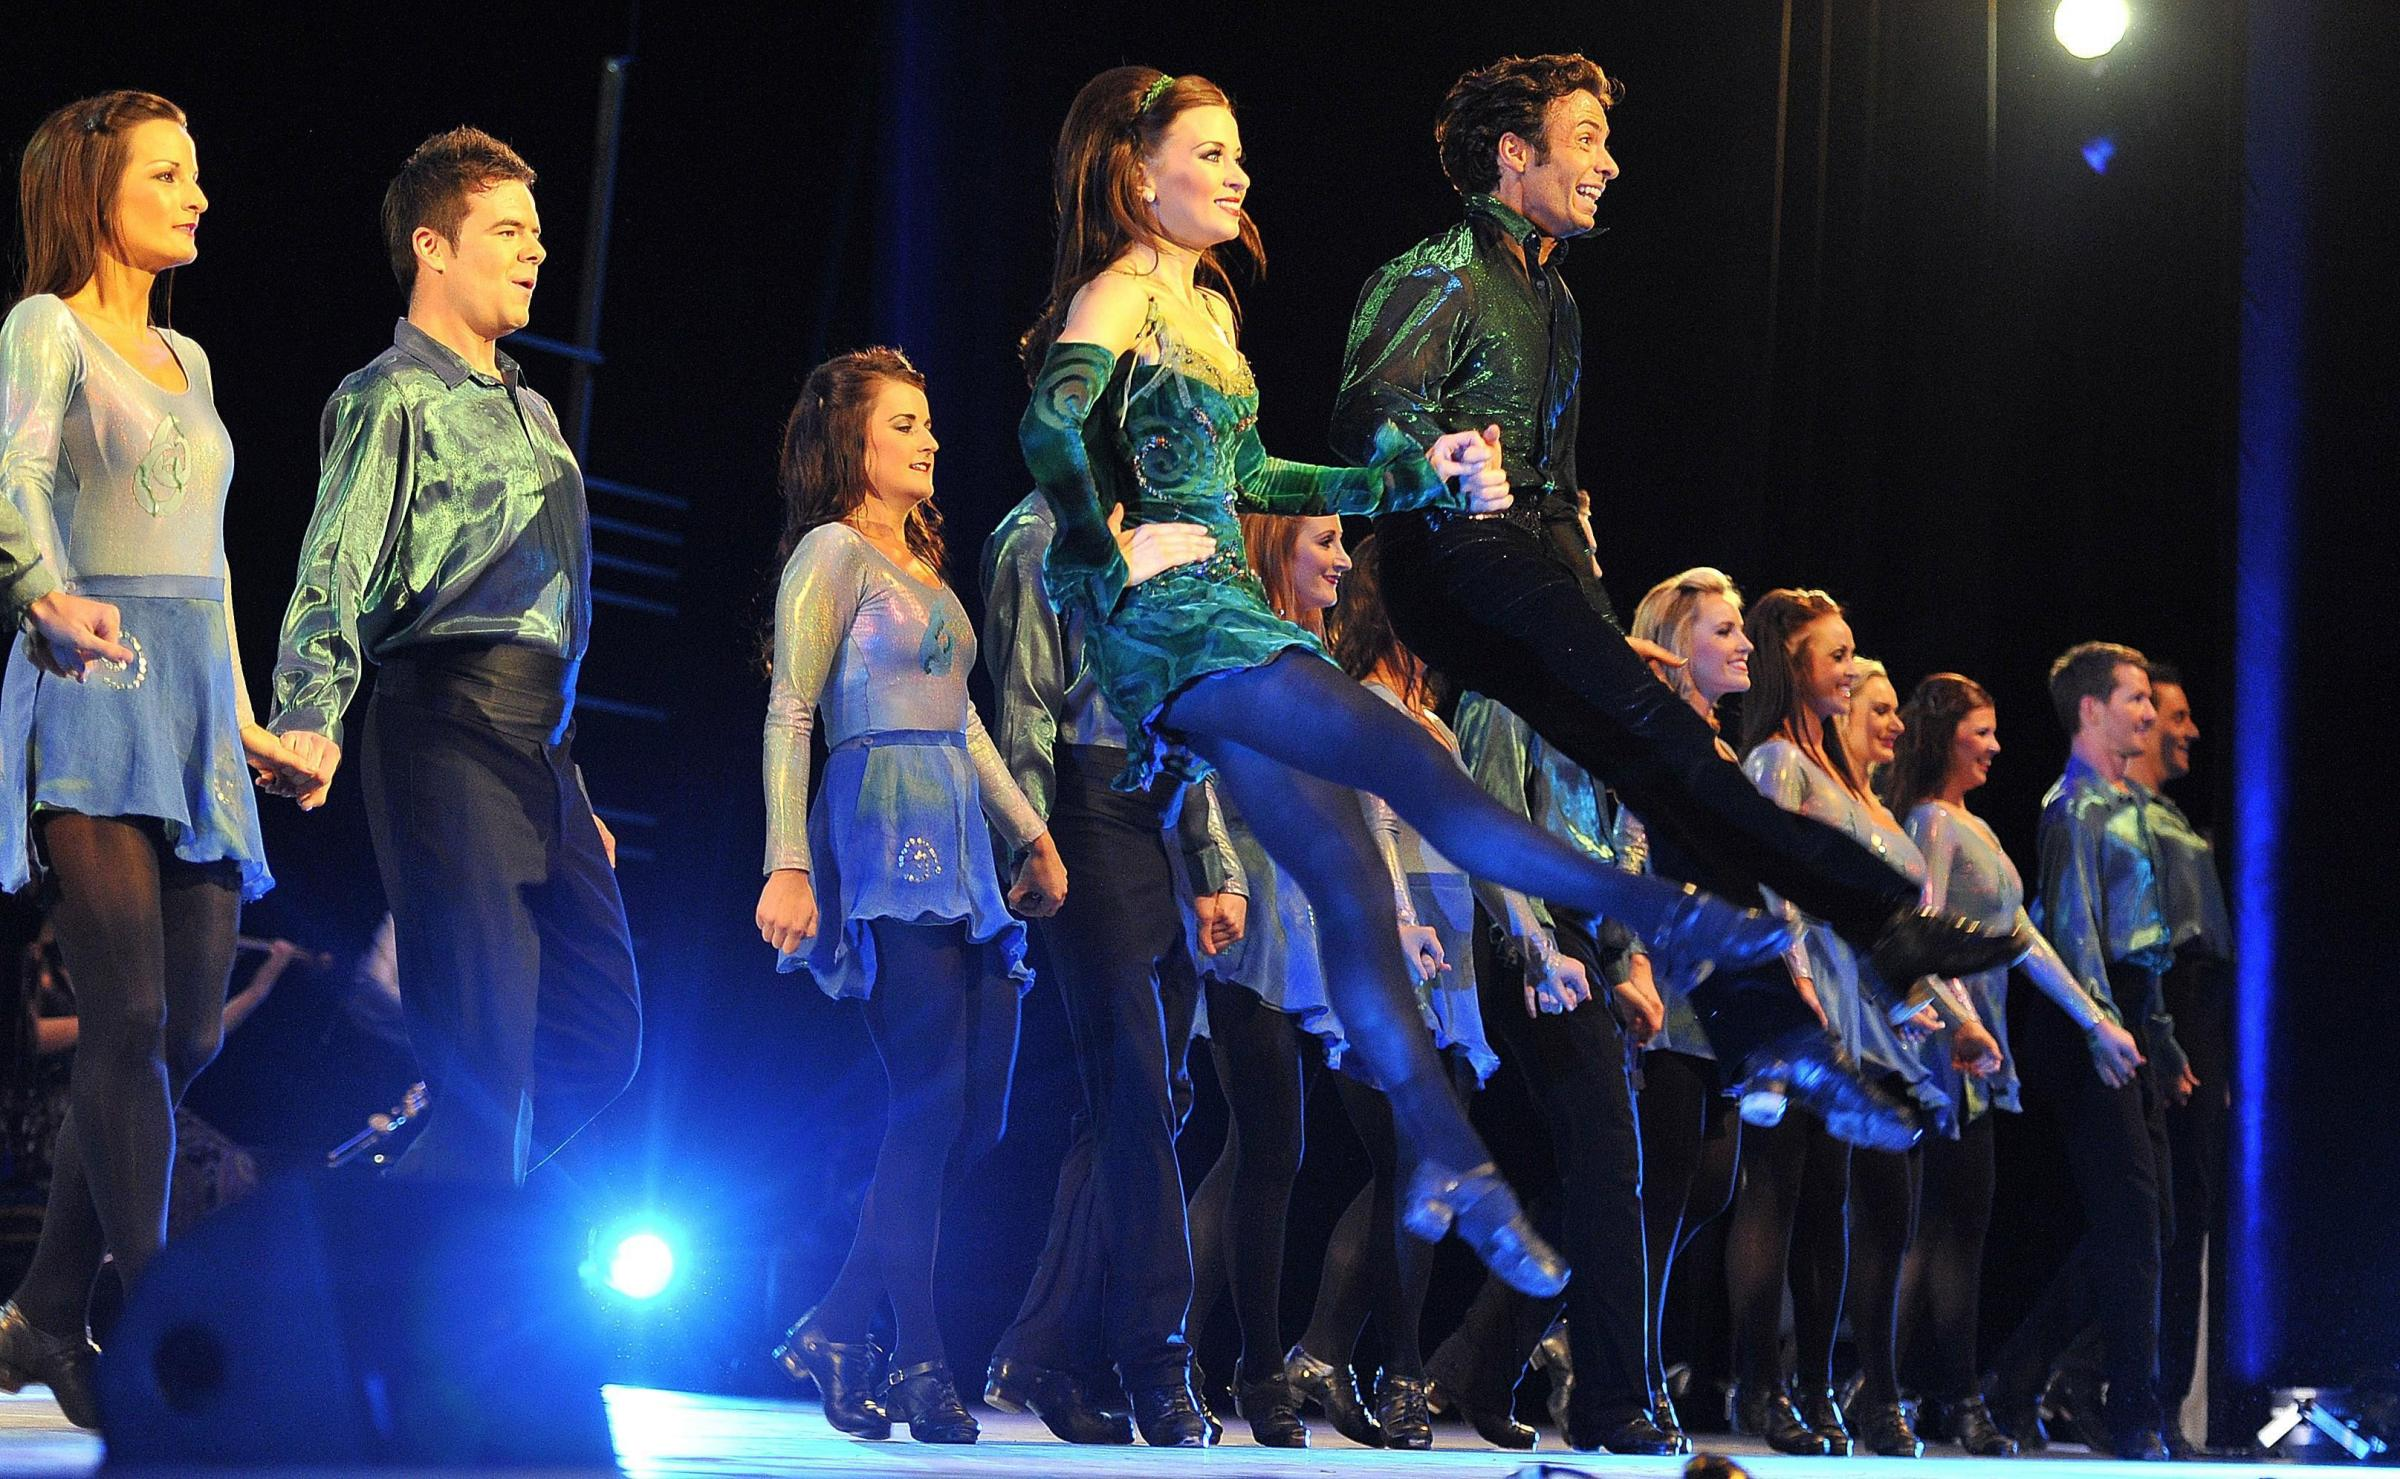 Riverdance will return to Bournemouth with an updated show to mark its 25th anniversary. Picture: Carl de Souza/PA Wire